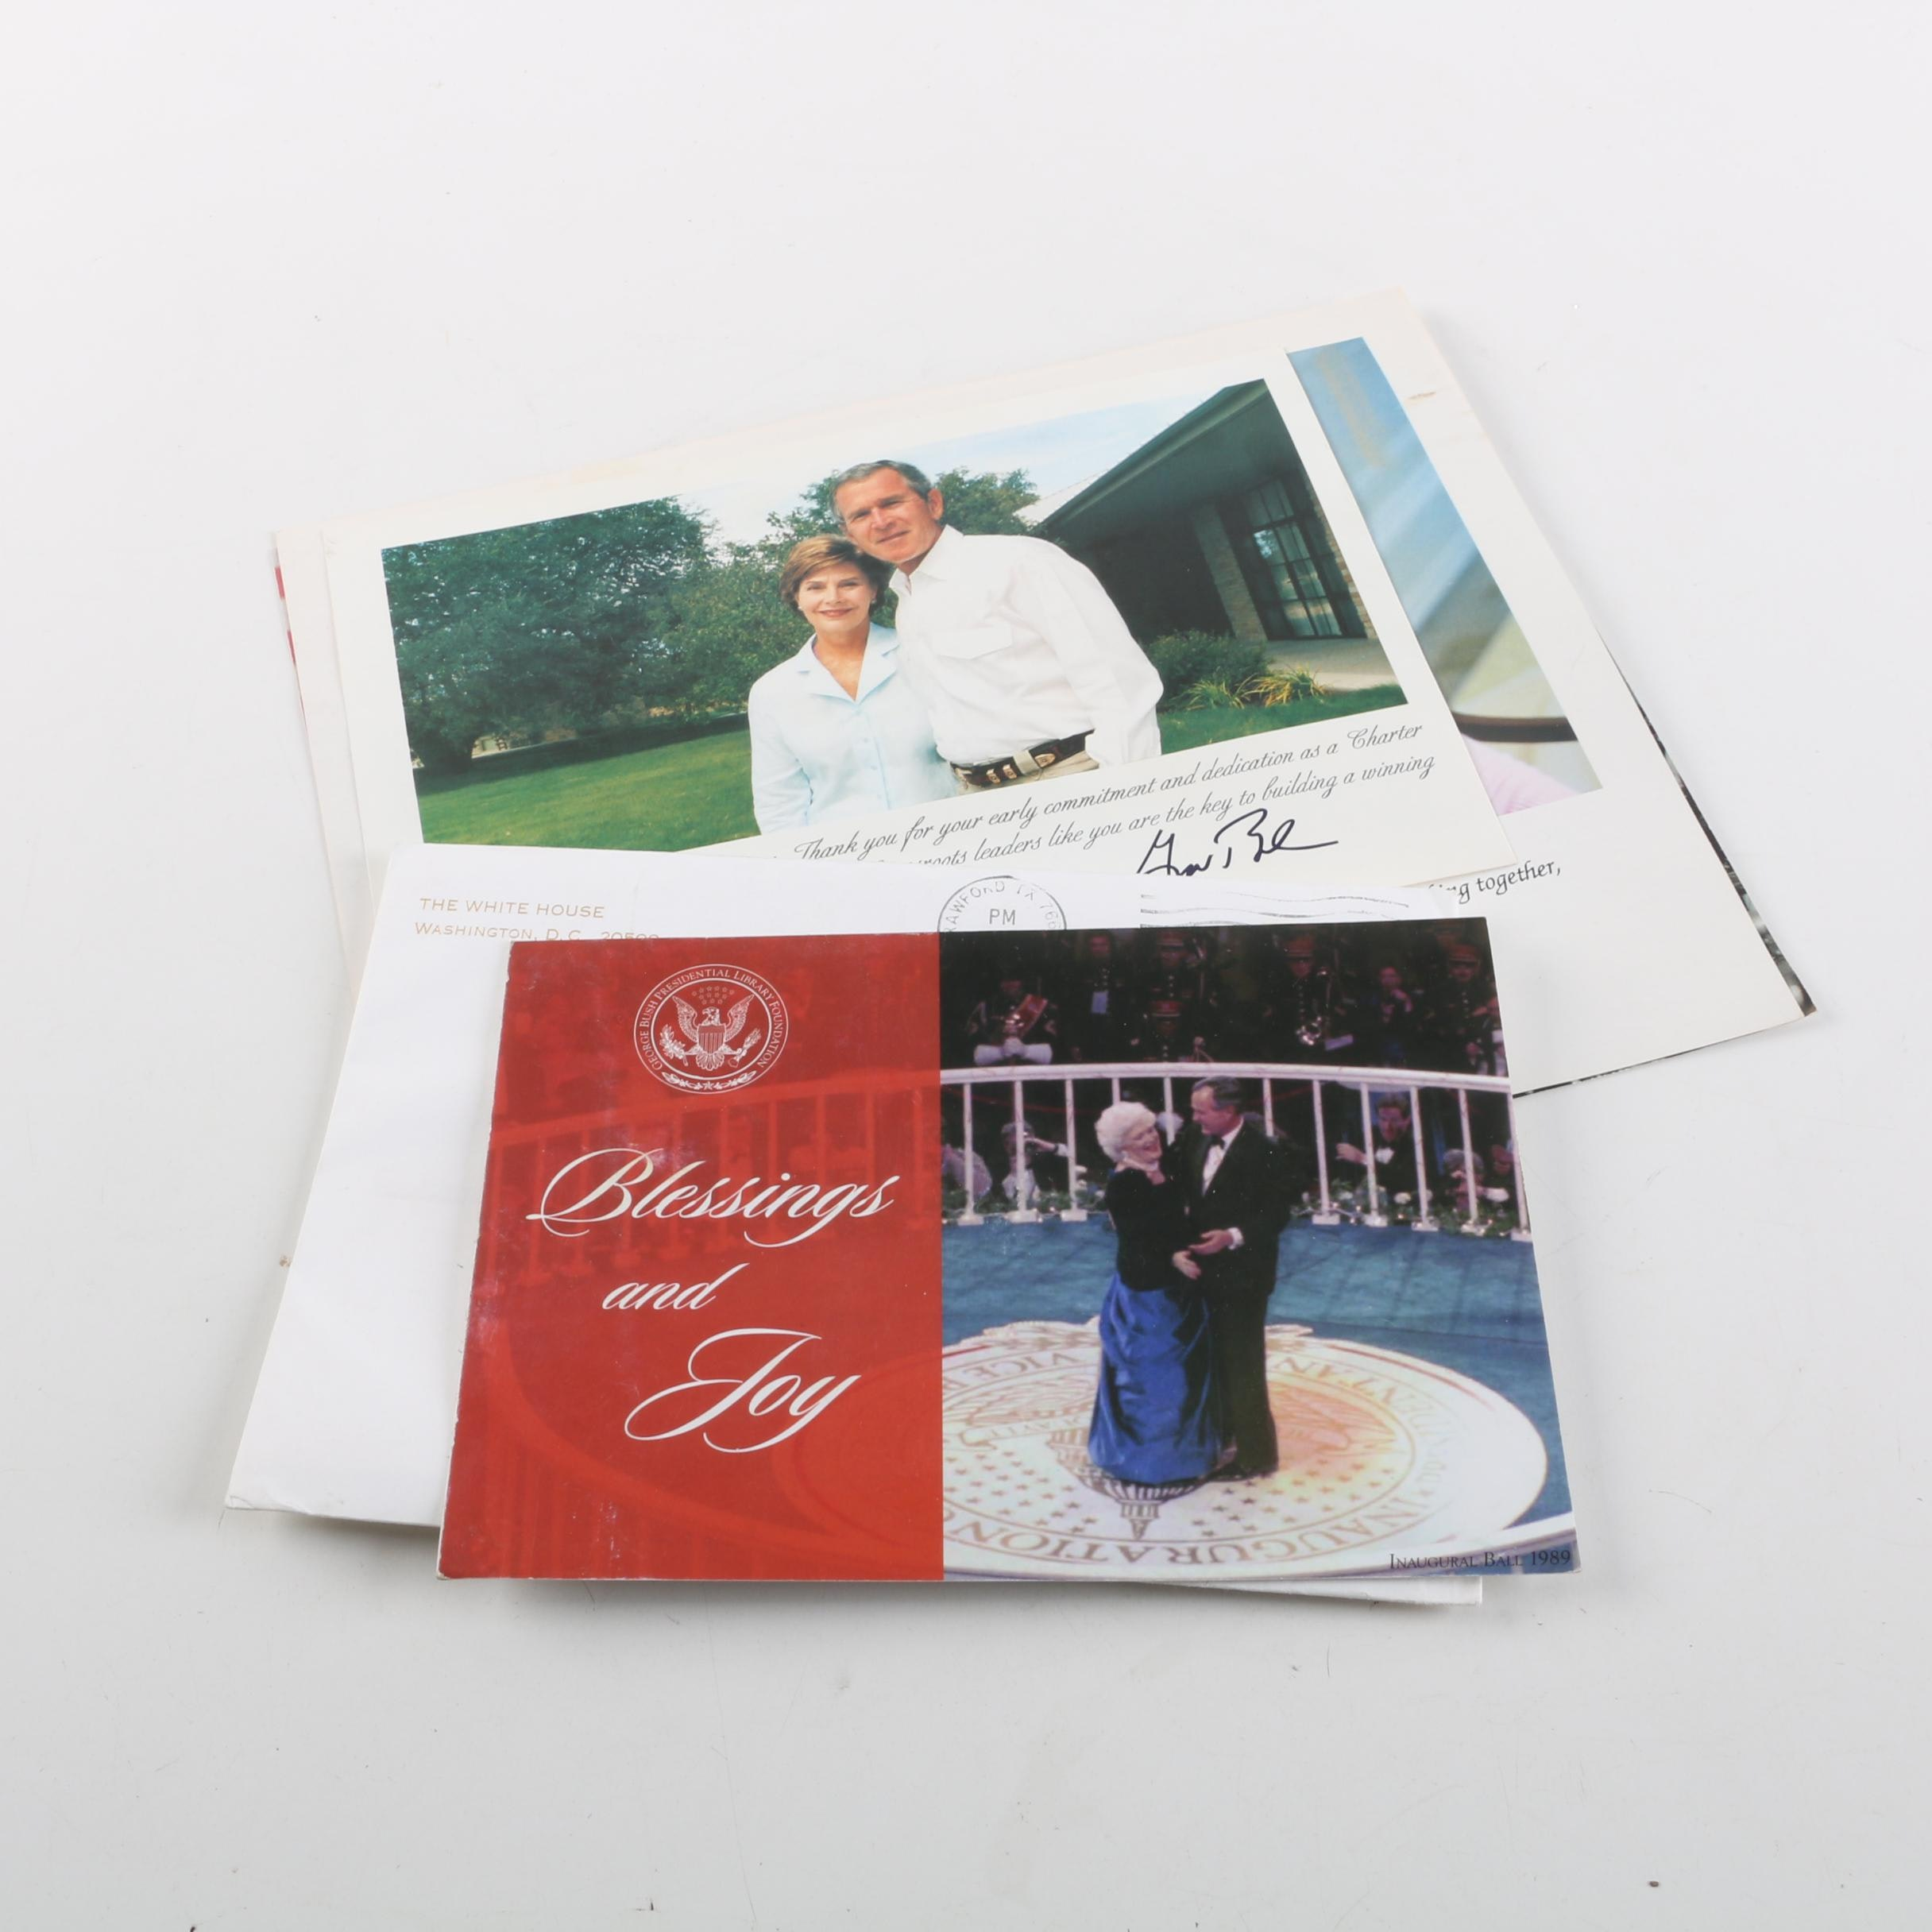 Ronald Reagan Foundation, RNC, and White House Greeting Cards